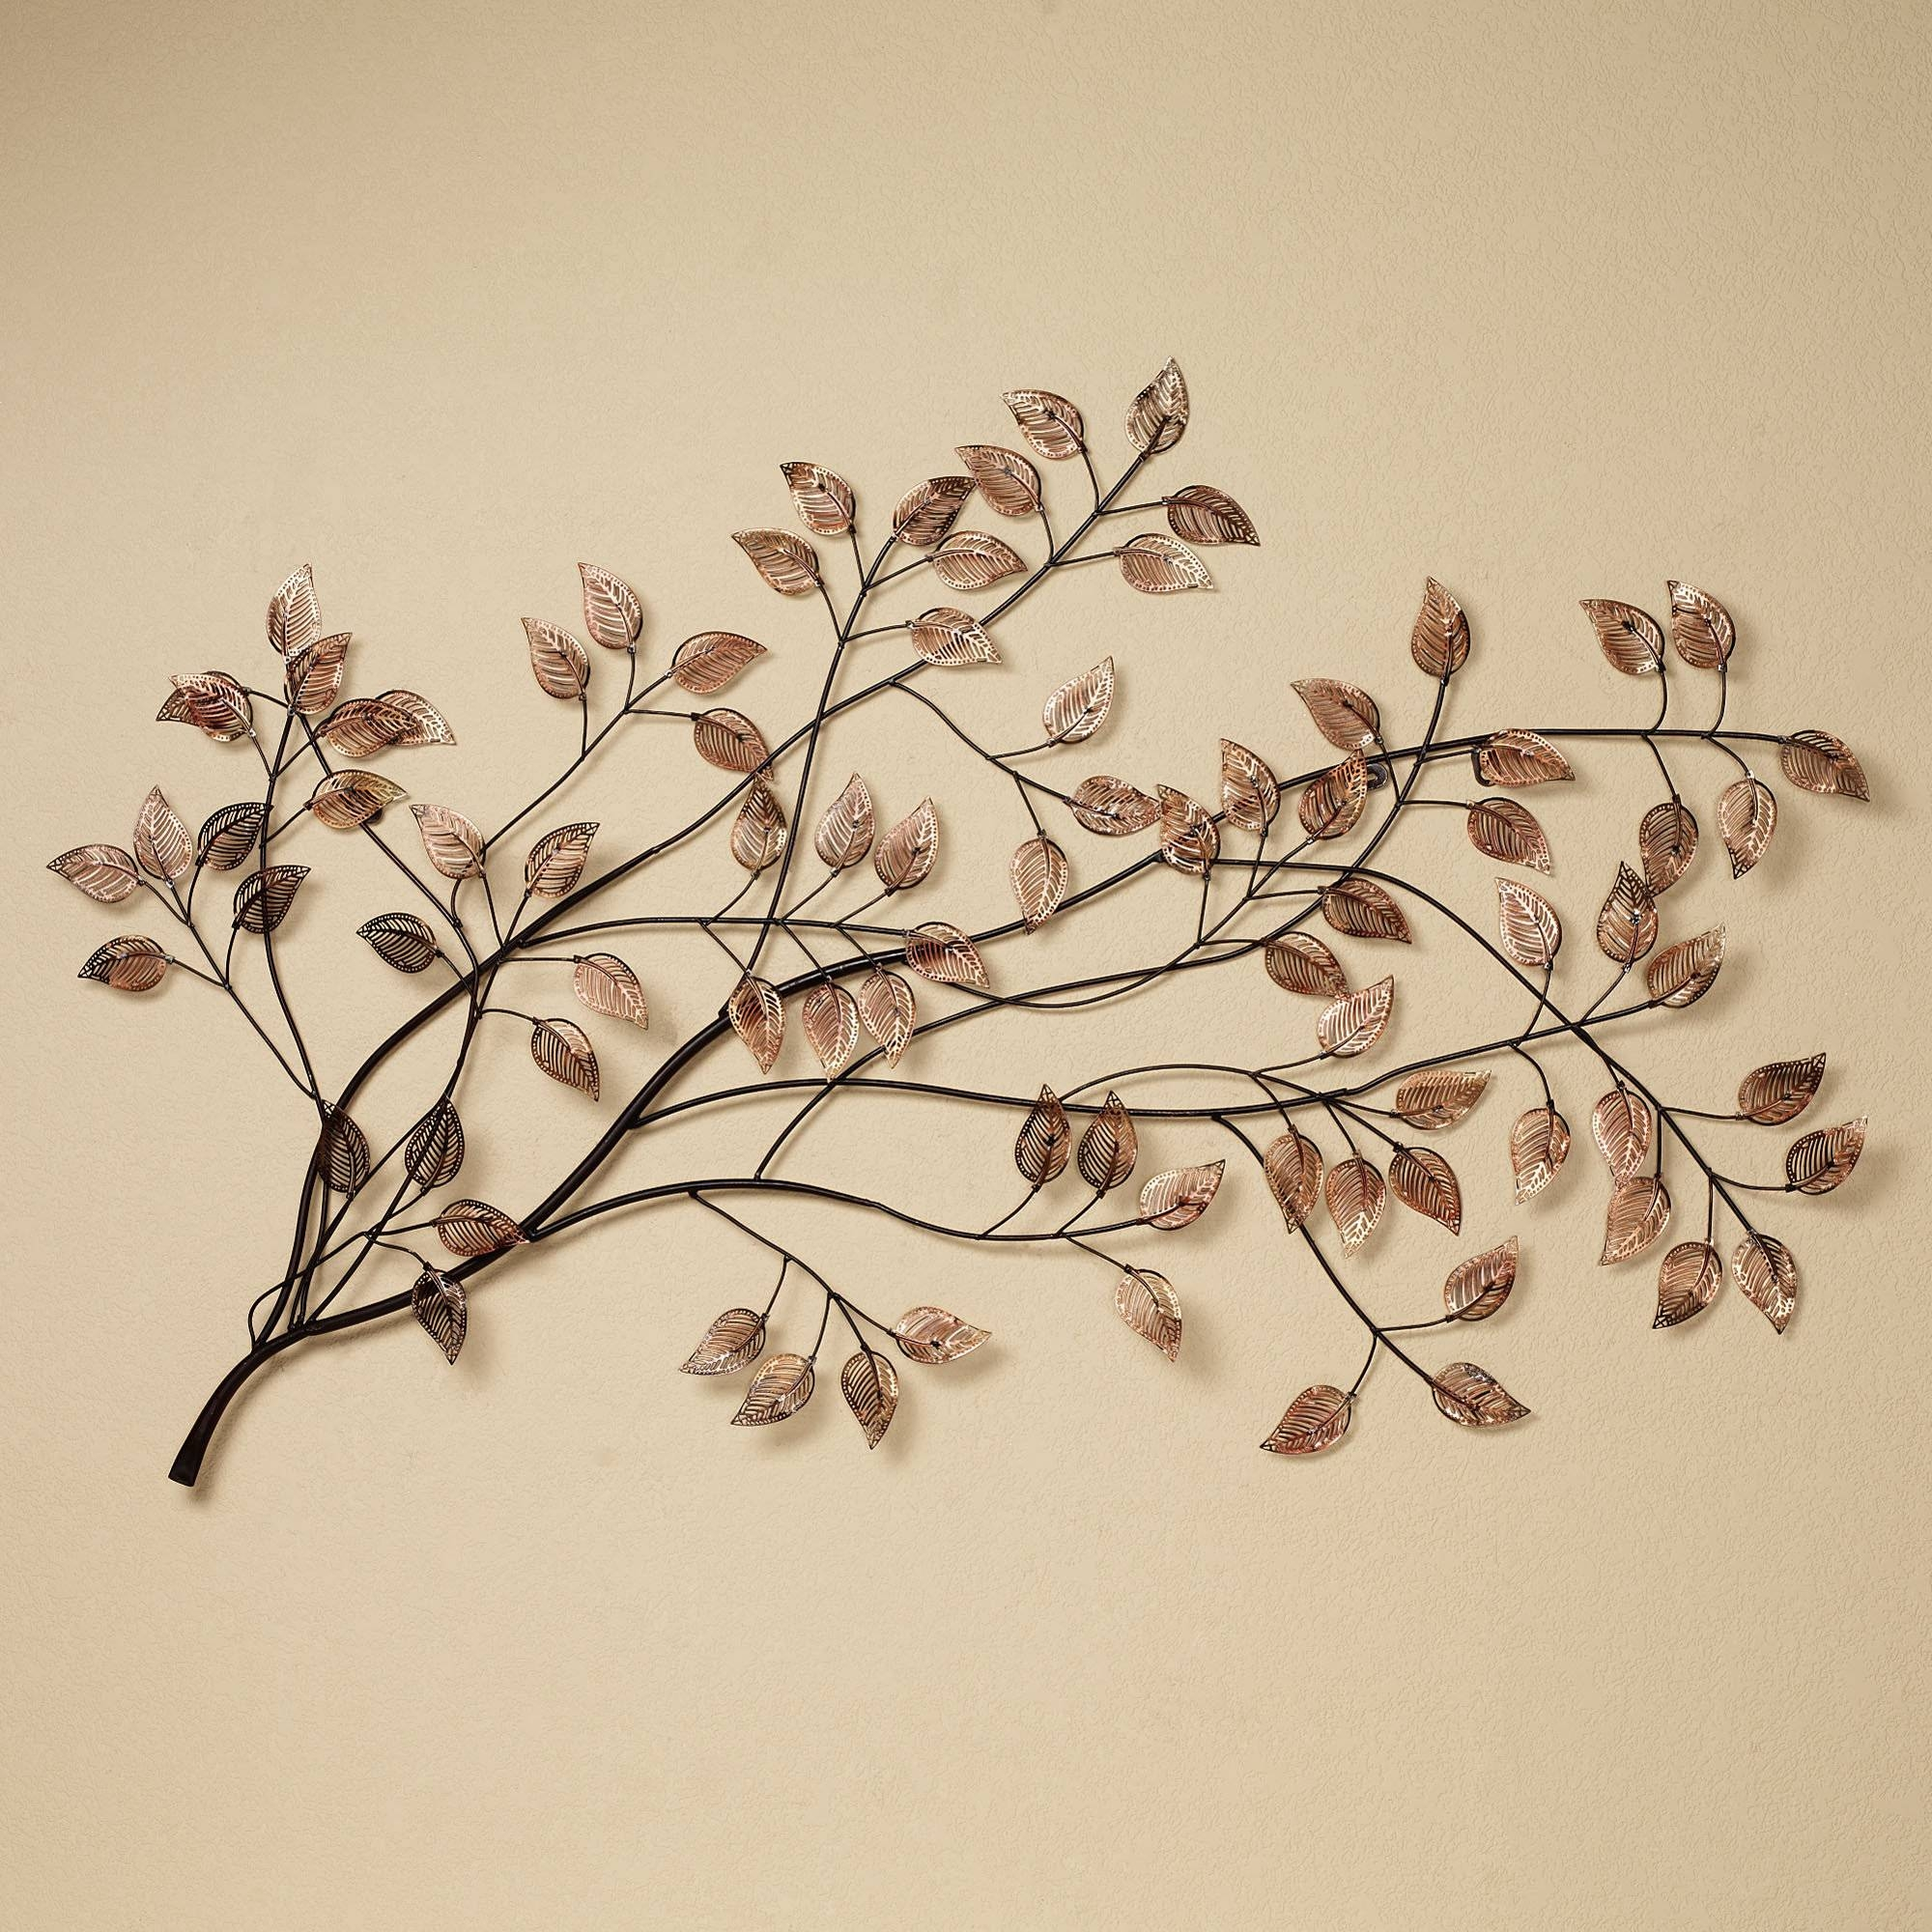 Awesome Natural Plant Design For Metal Wall Art And Decor Leaves Inside Recent Metal Wall Art Decor (View 4 of 20)